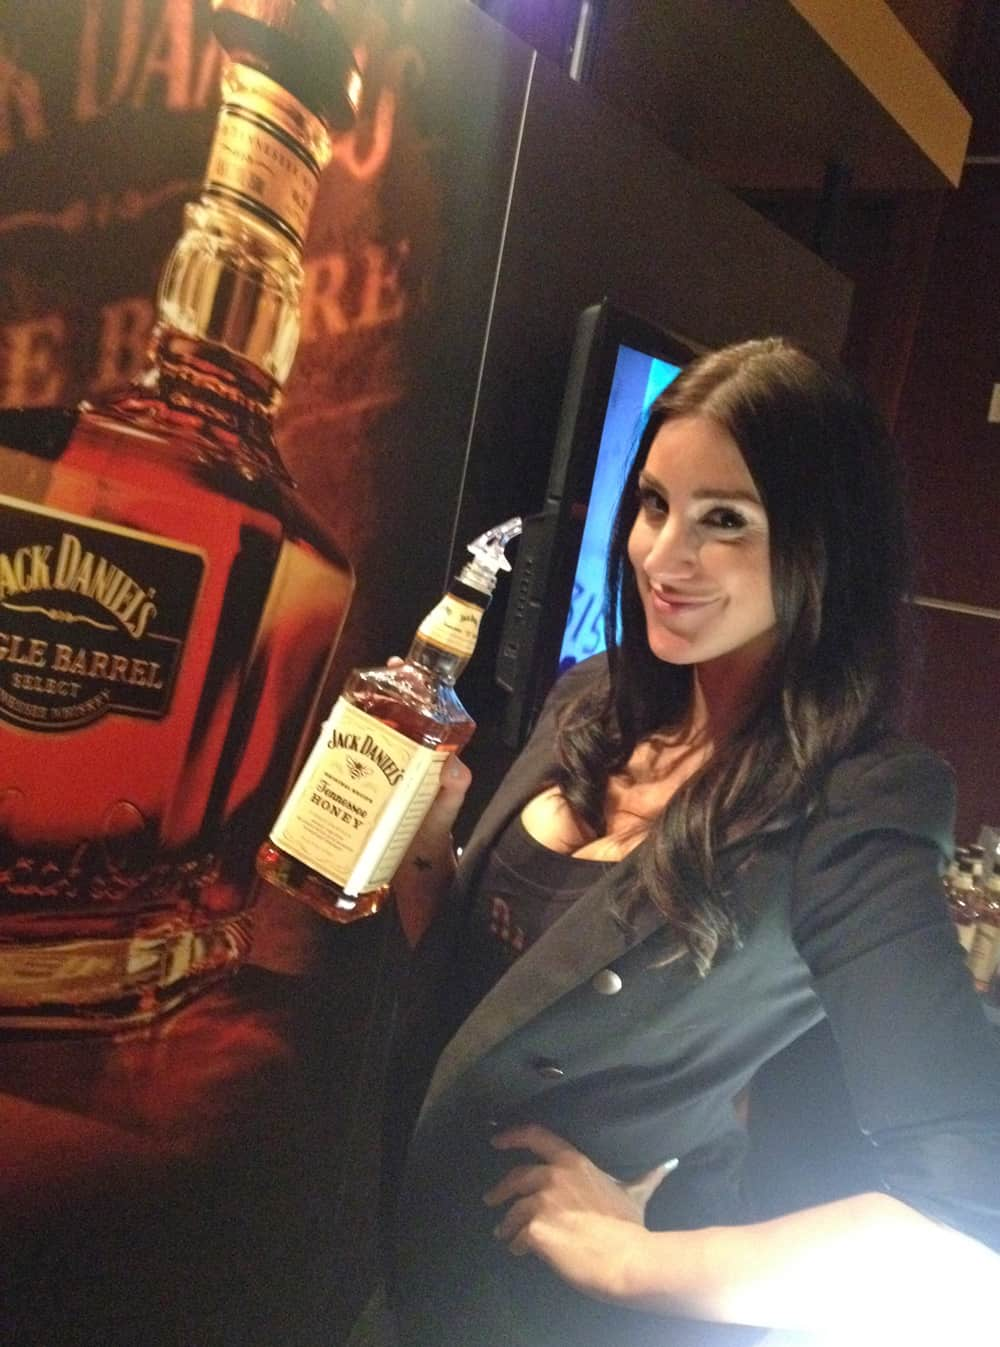 WhiskeyFest 2014 - Jack Daniels Honey, Las Vegas, NV